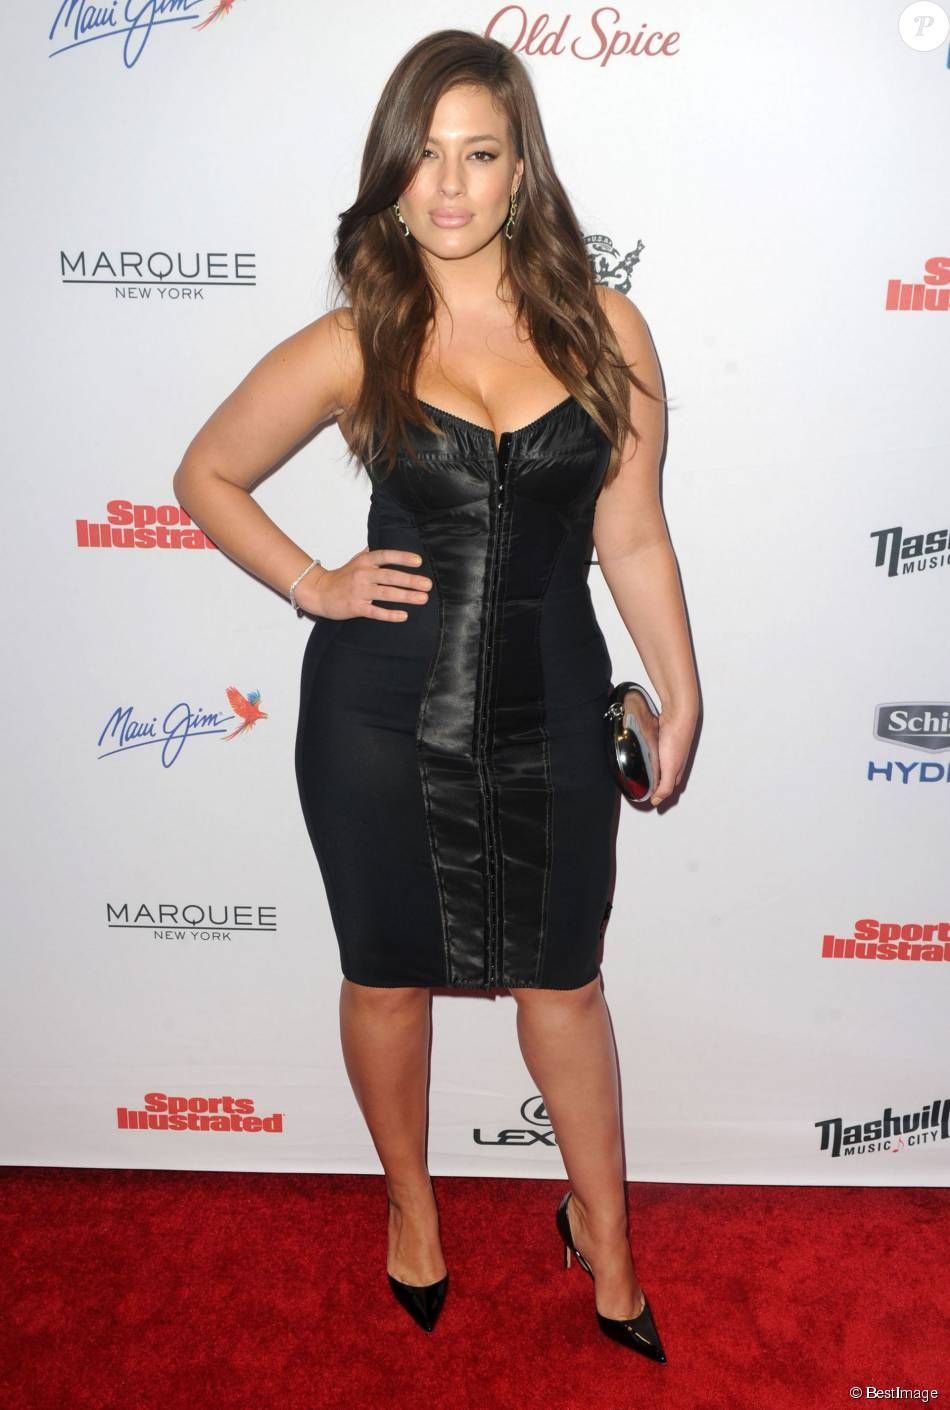 Ashley Graham - People à l'évènement organisé pour la sortie de Sport Illustrated Swimsuit à New York, le 10 février 2015. Celebrities attend the 2015 Sports Illustrated Swimsuit Celebration at Marquee in New York City, New York on February 10, 2015.10/02/2015 - New York